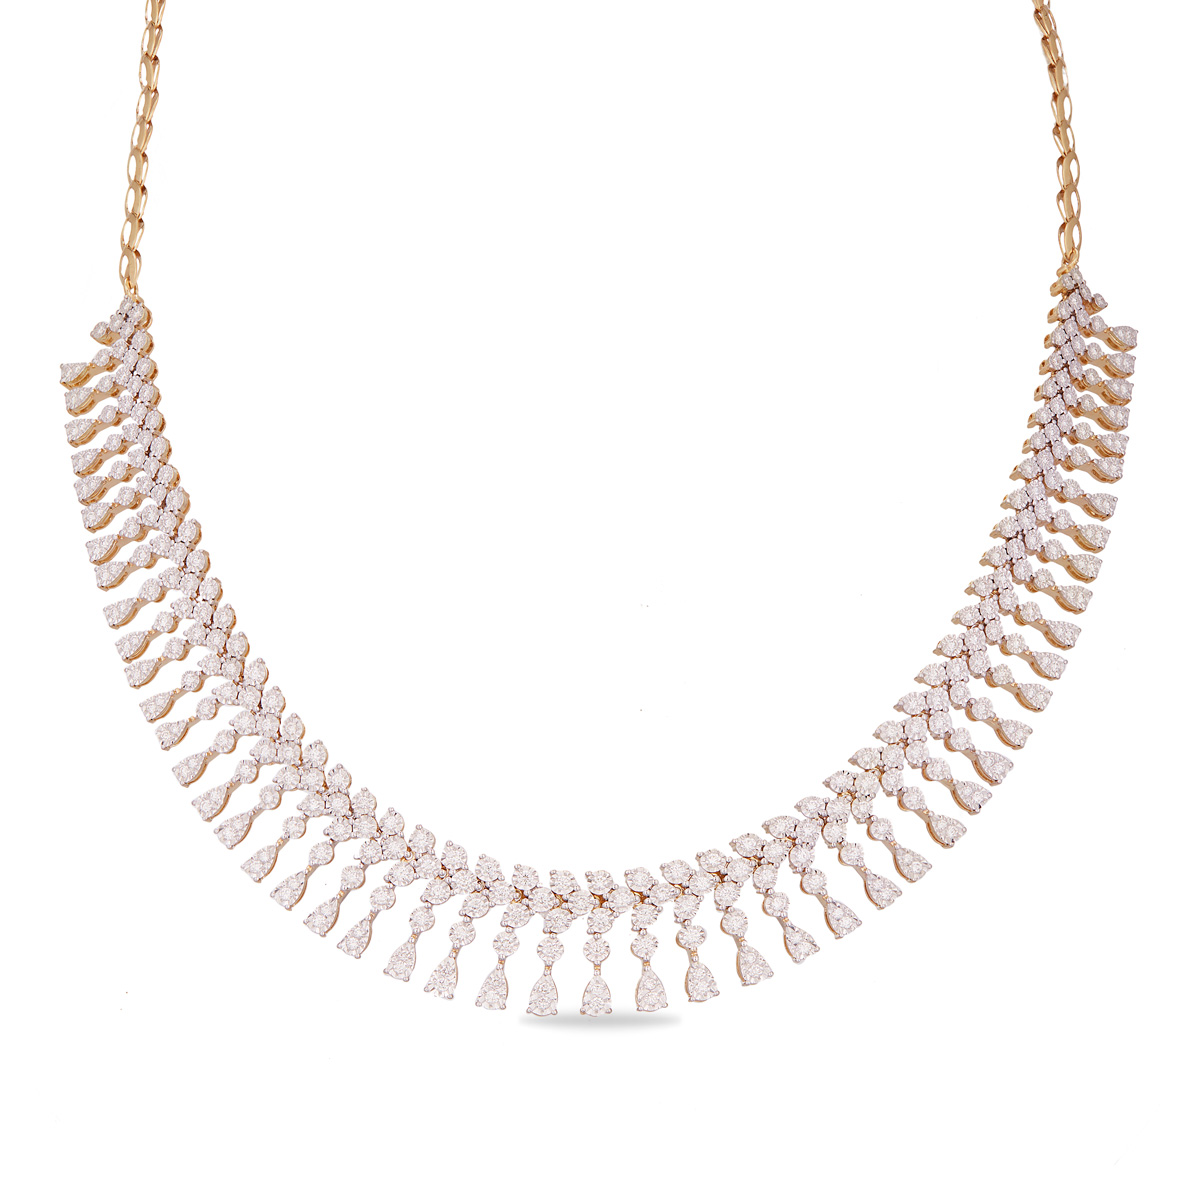 The Tilika Necklace